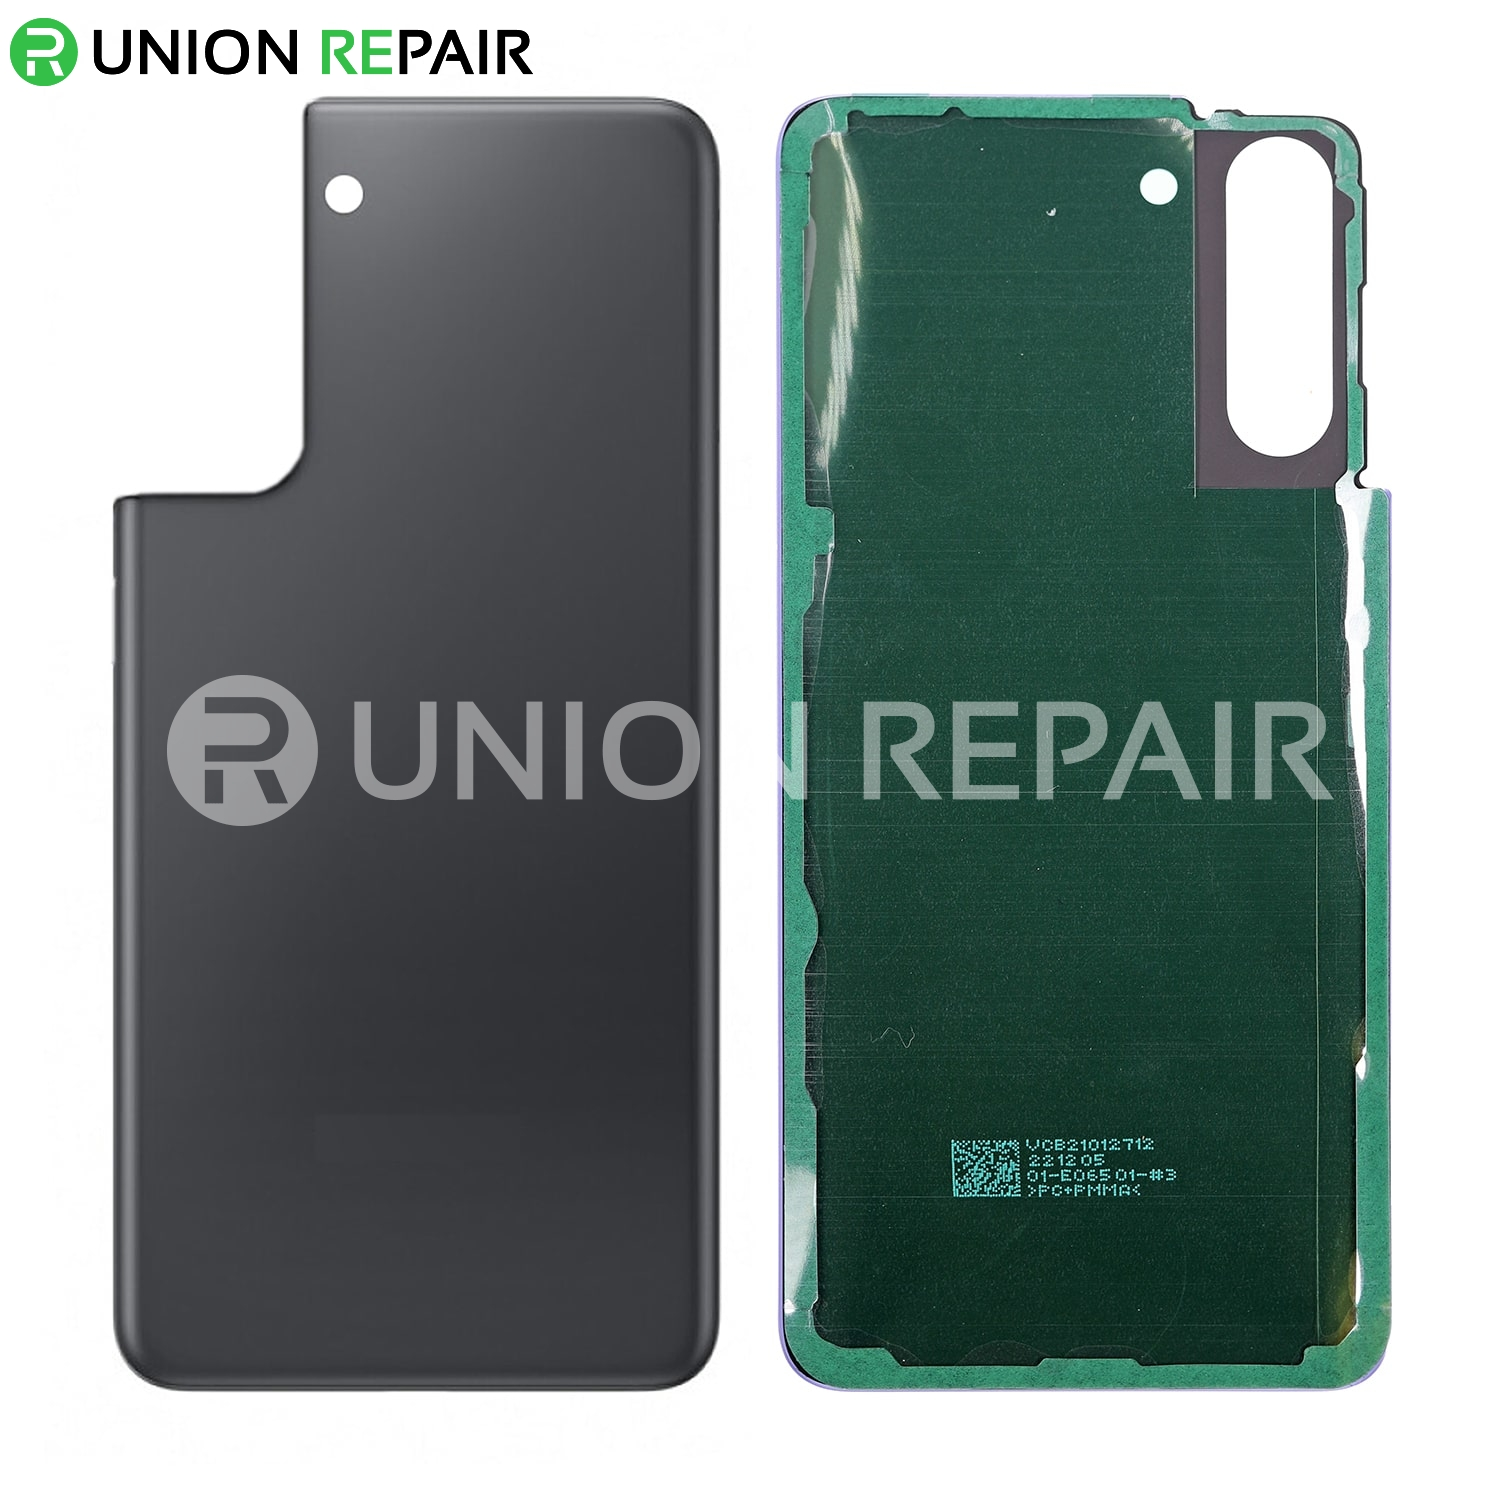 Replacement for Samsung Galaxy S21 Battery Door - Grey